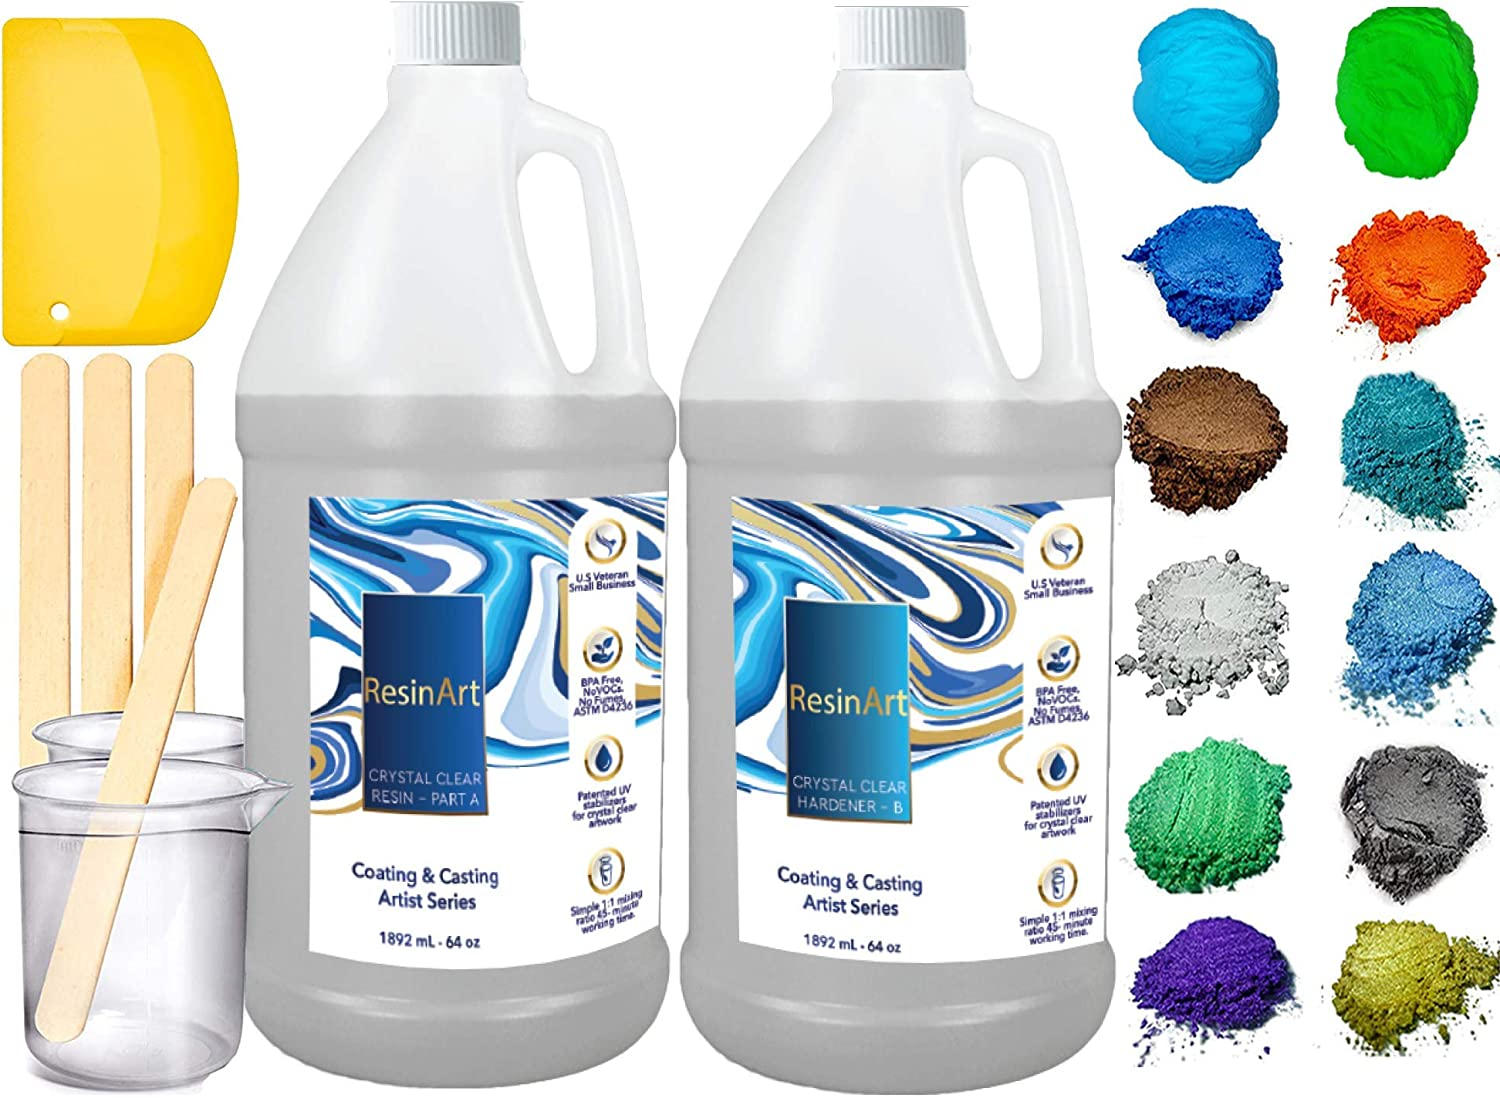 ResinArt 128oz Kit: Clear Casting & Coating Epoxy, 10 Mica Pigments, 2 Glow in The Dark Colors, 3 Accessories